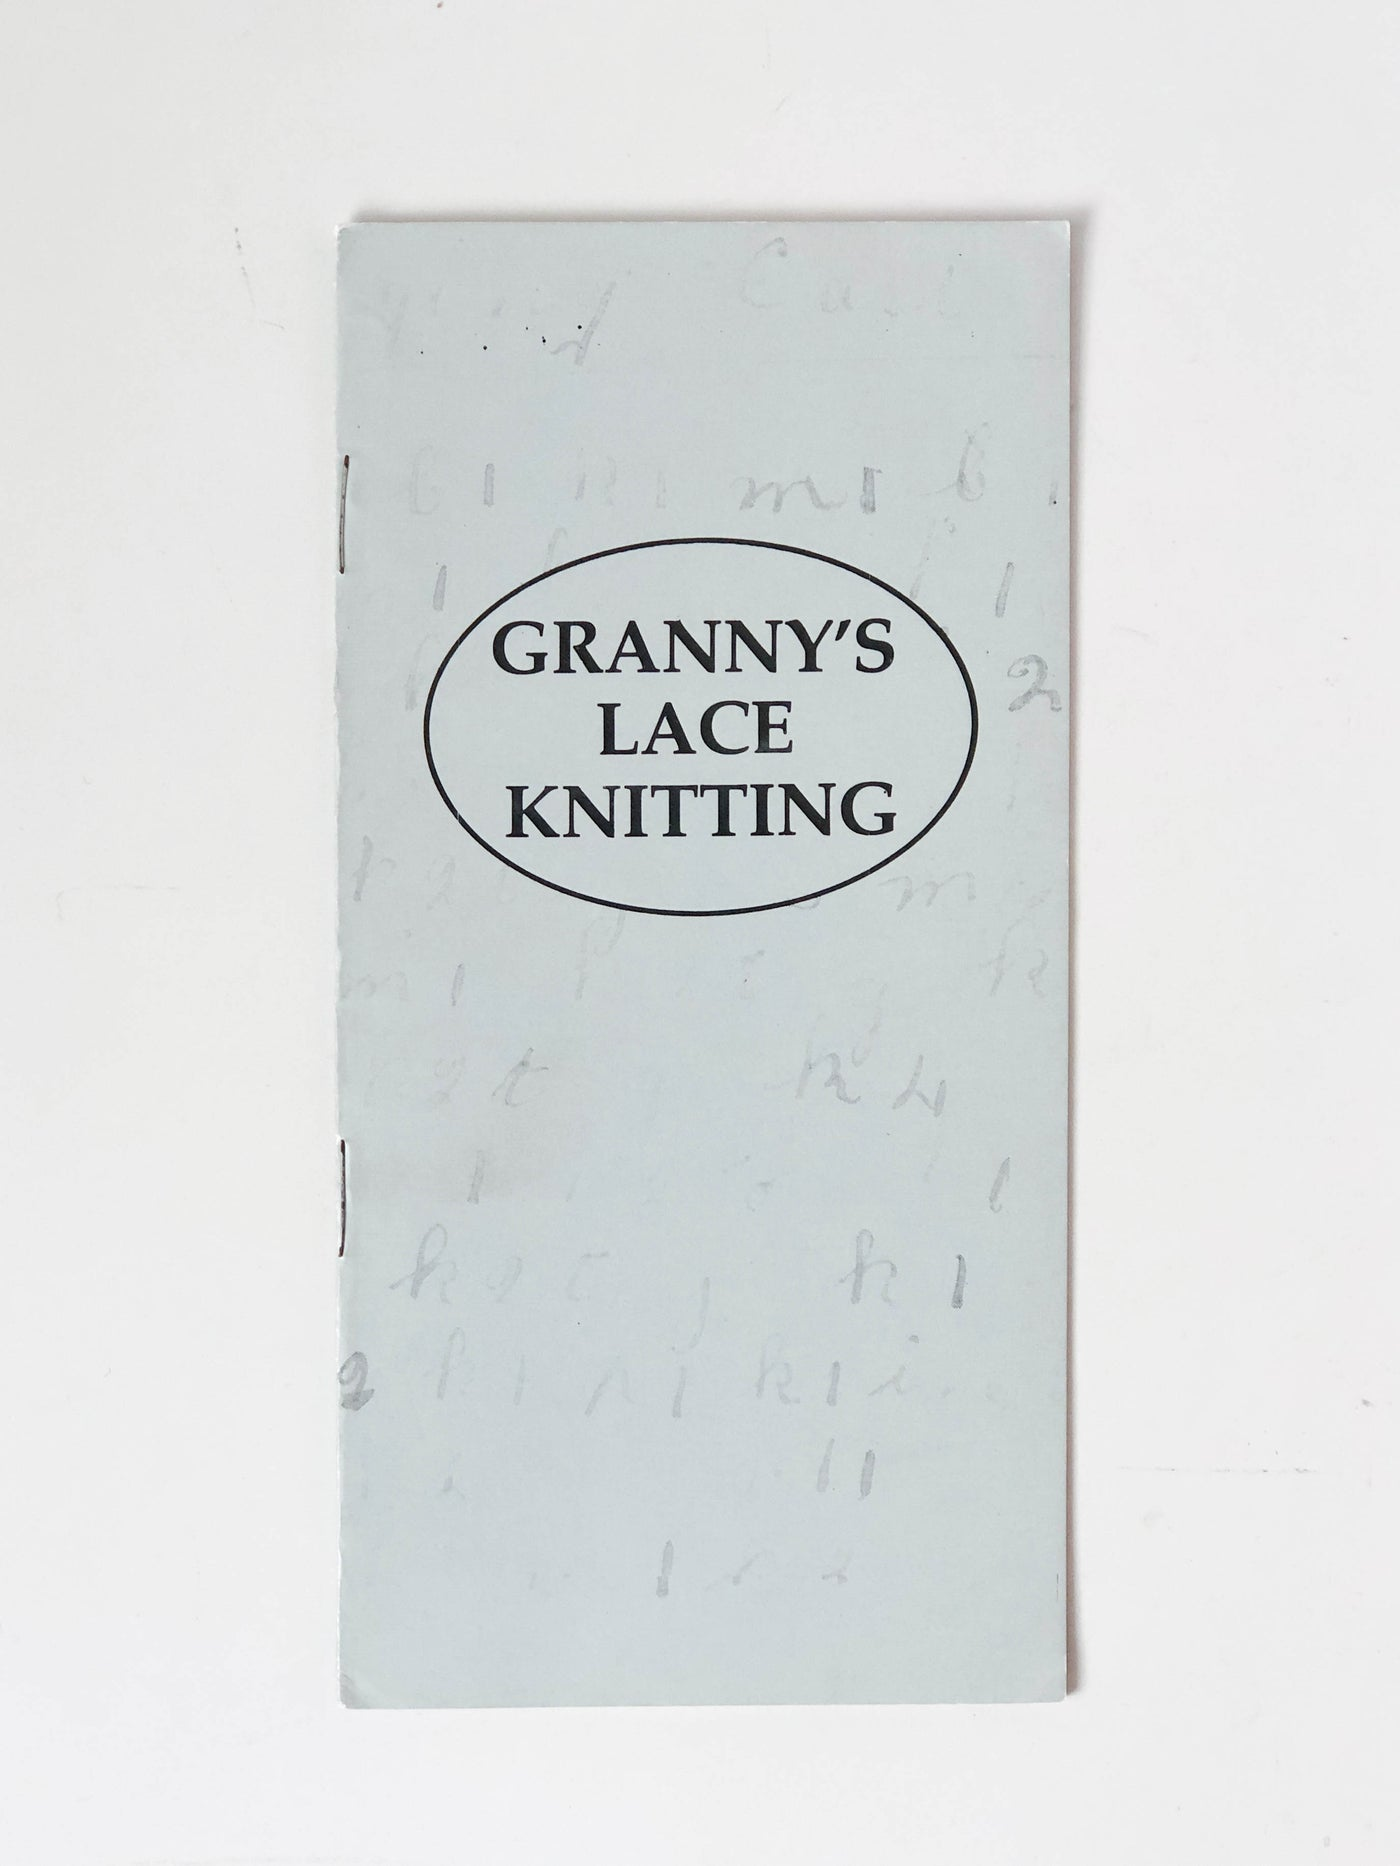 Granny's Lace Knitting by Mary Wright